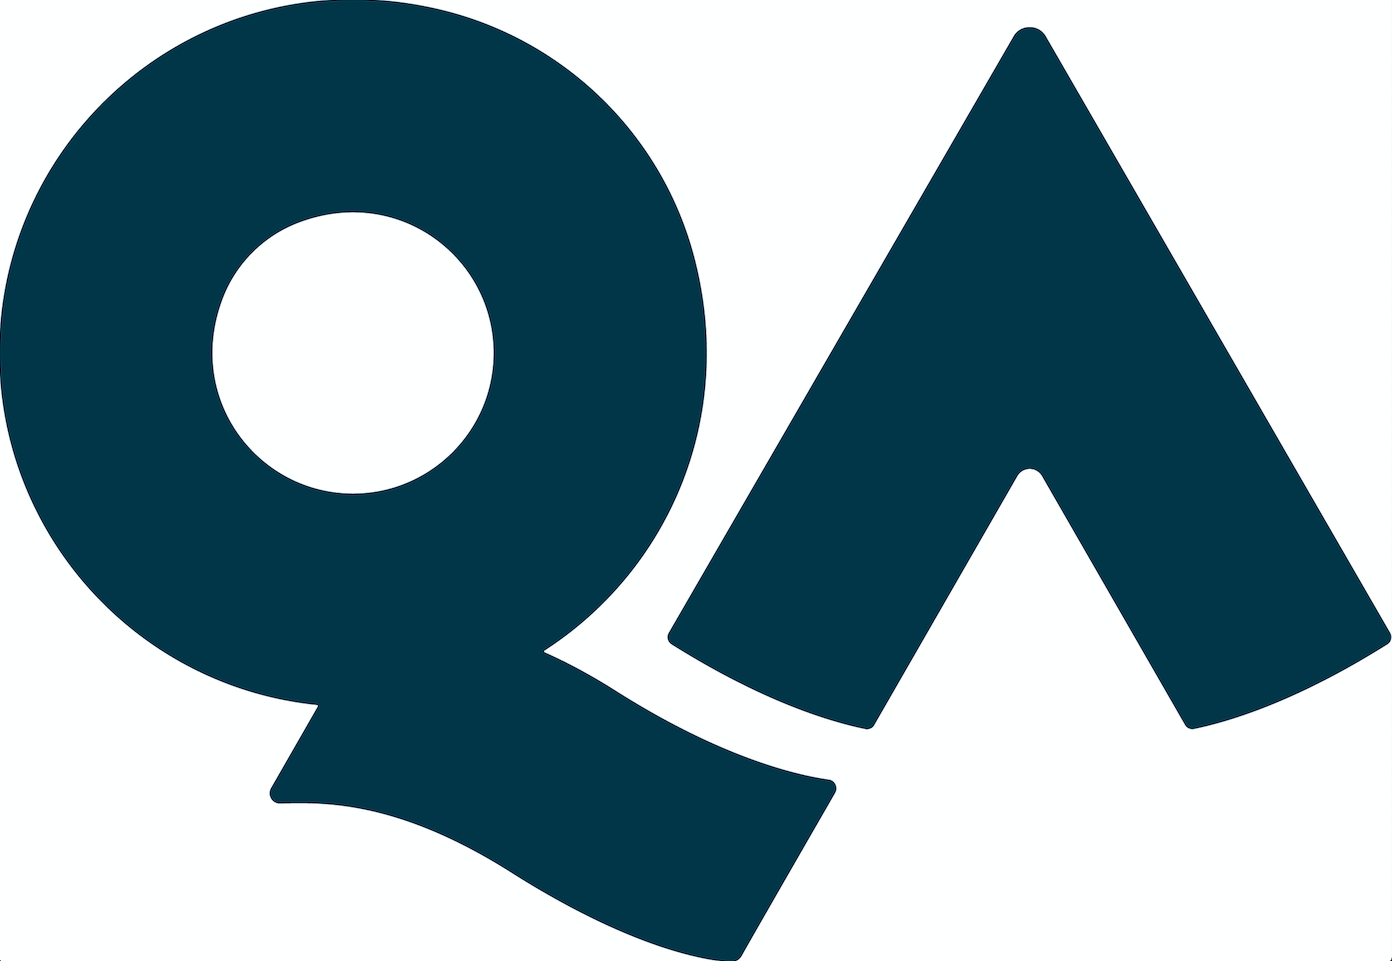 Colleges & Training Providers: QA